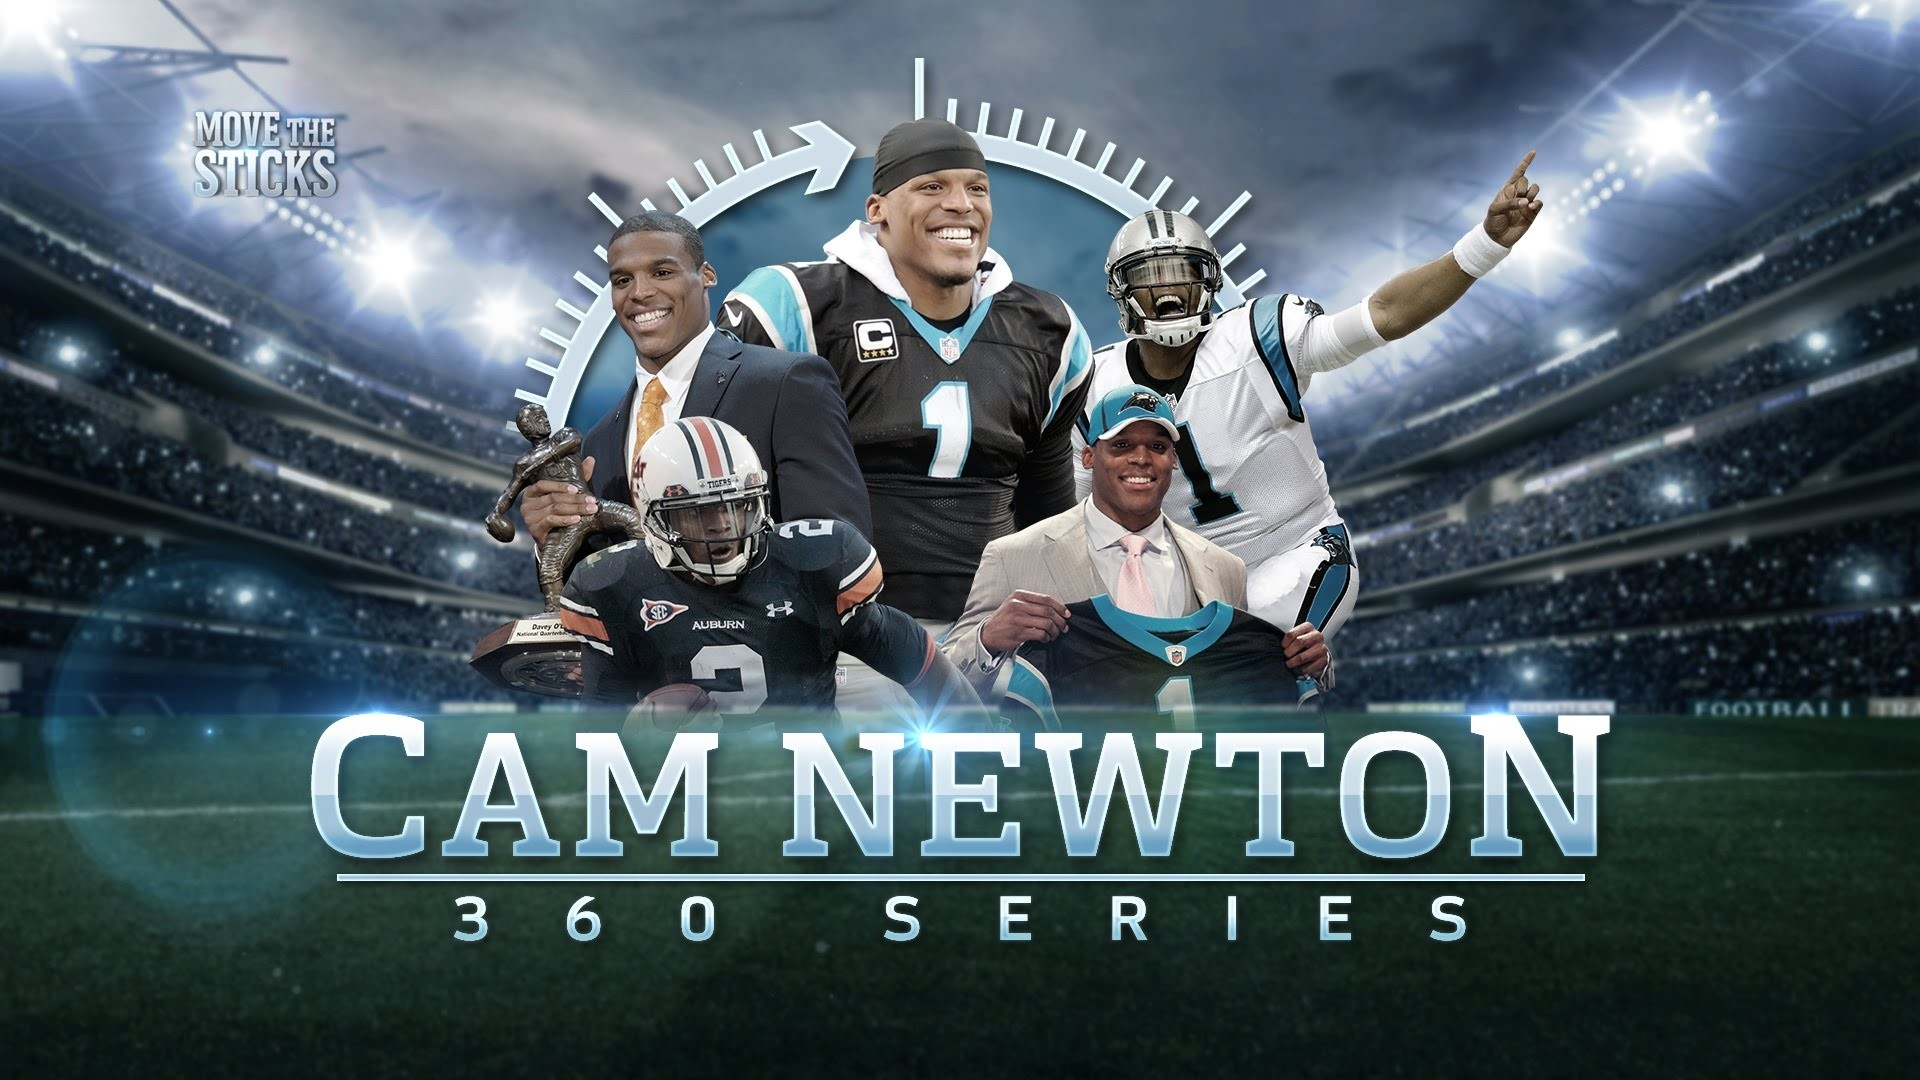 1920x1080 Cam Newton From Junior College To Mvp Cam Newton 360 Move The Cam Newton  Wallpapers 2017